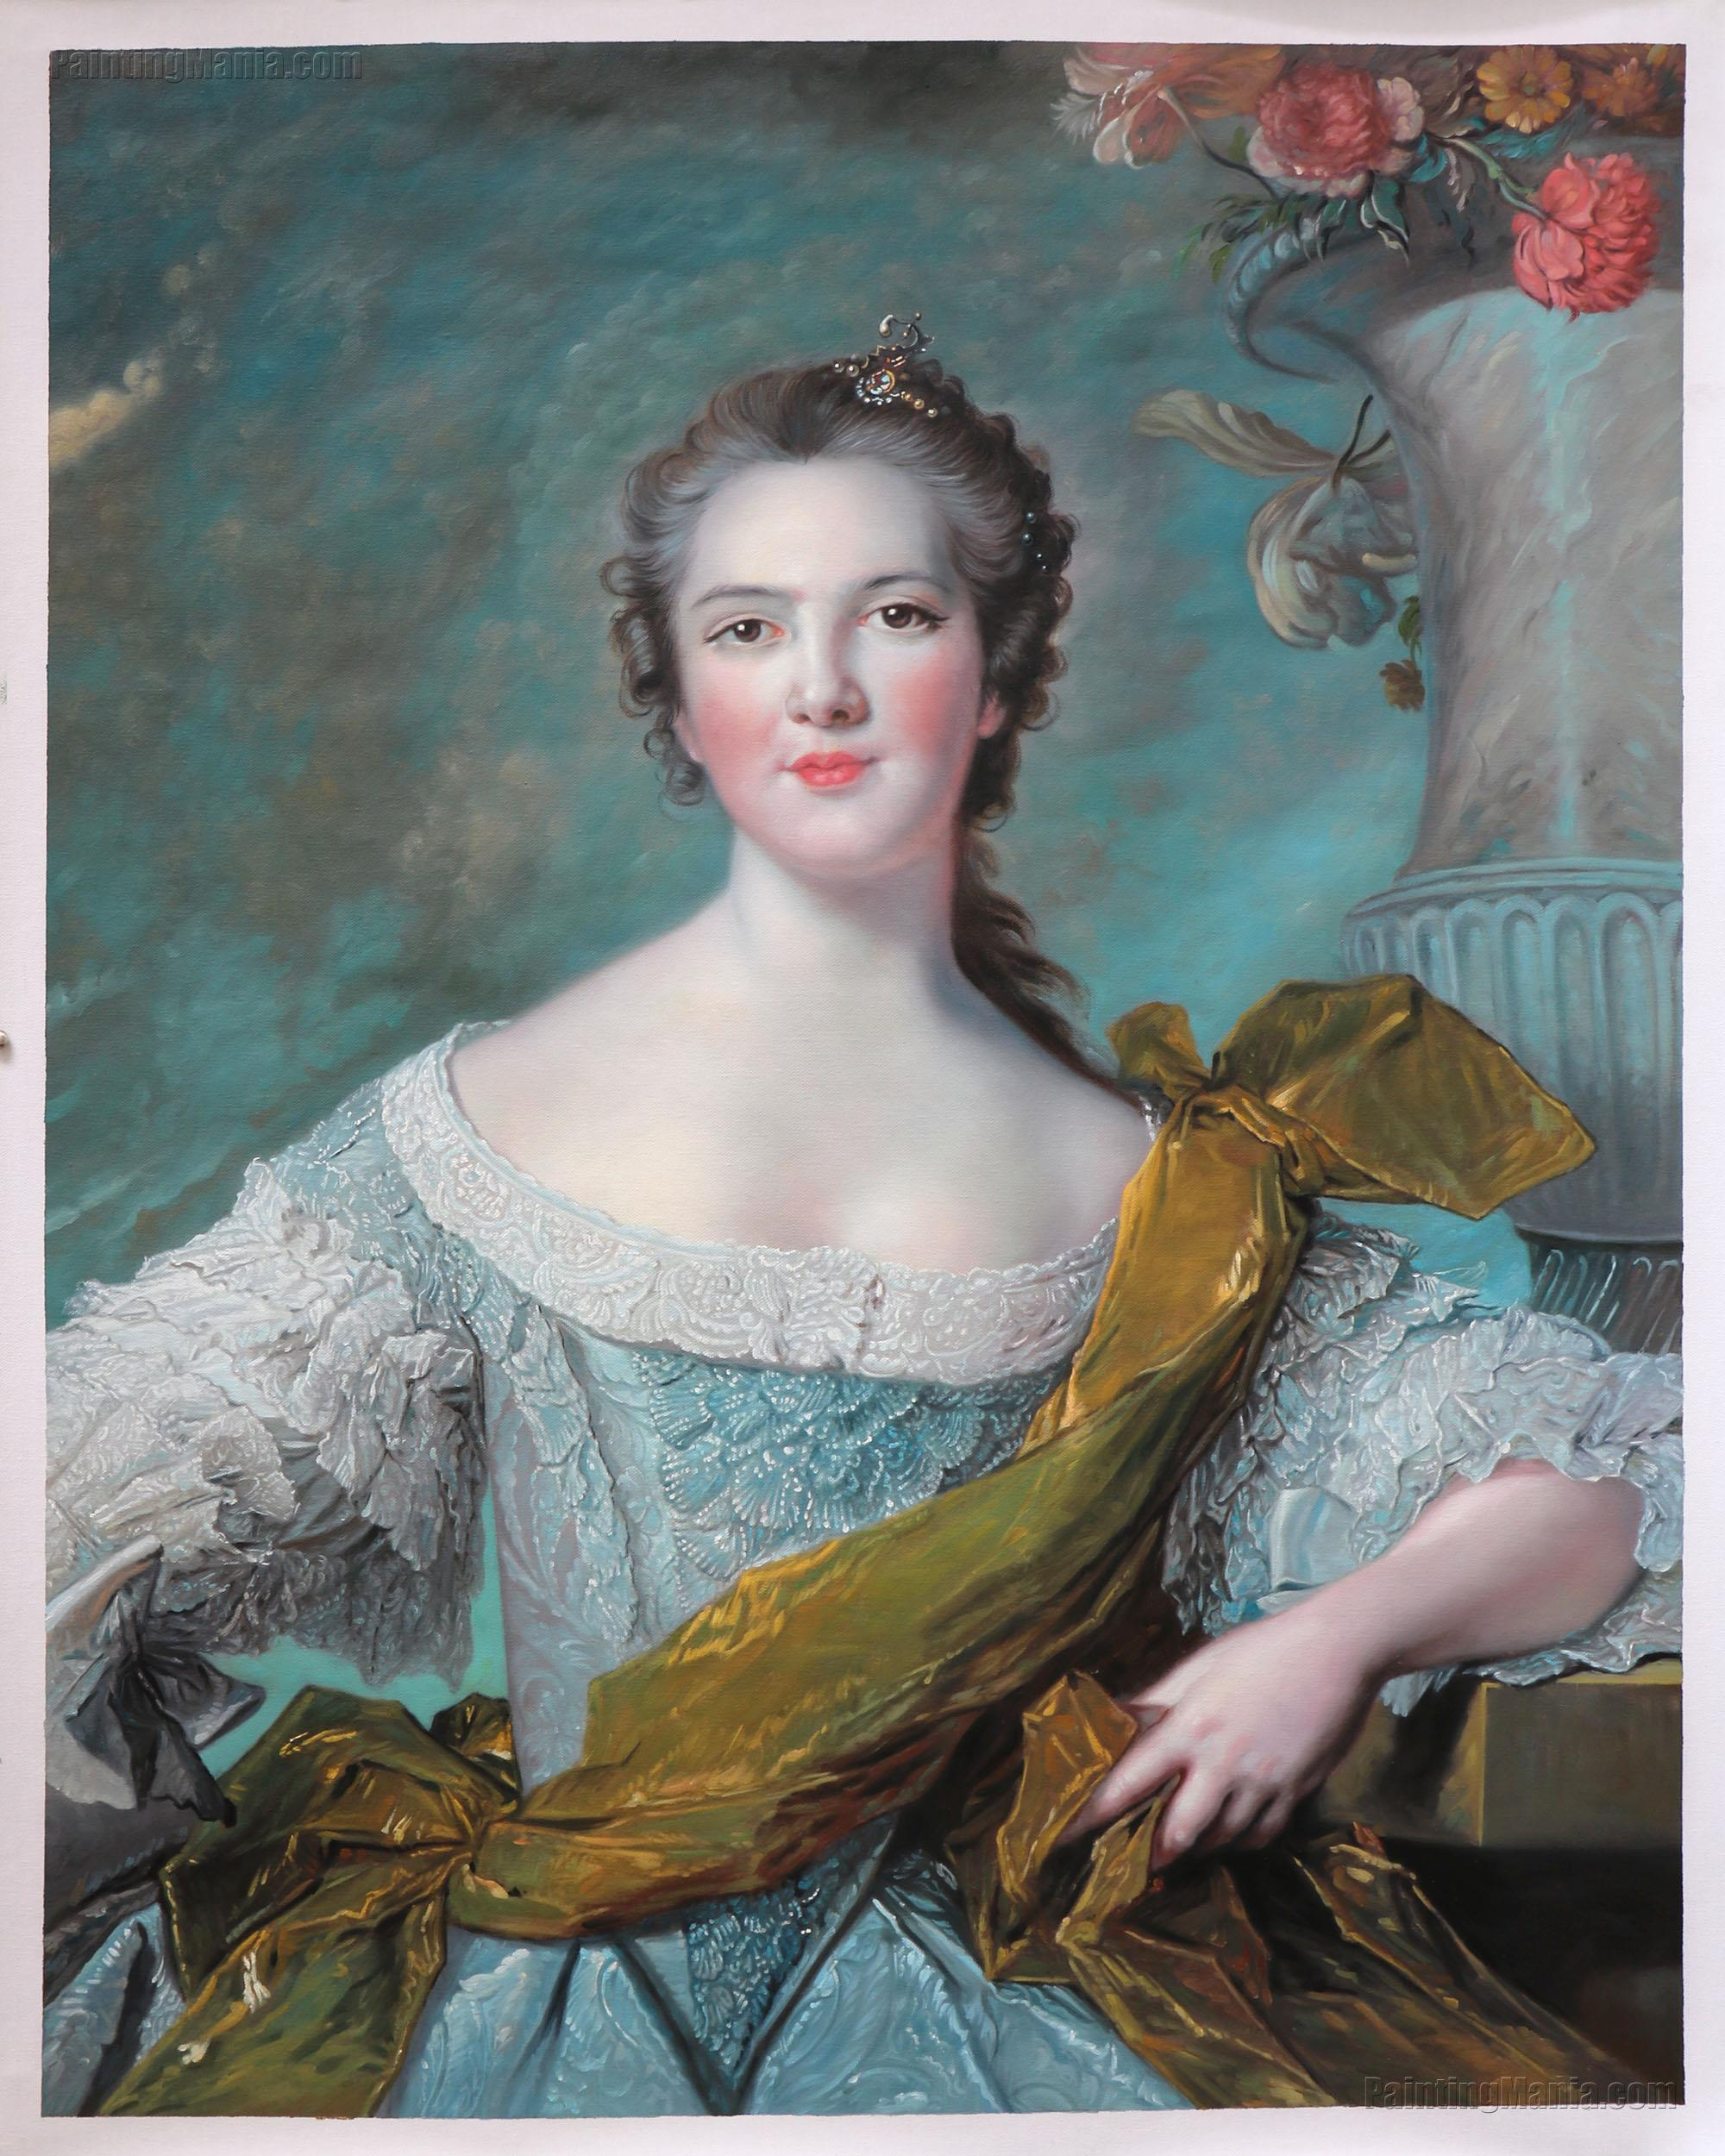 Madame Victoire of France by Jean-Marc Nattier